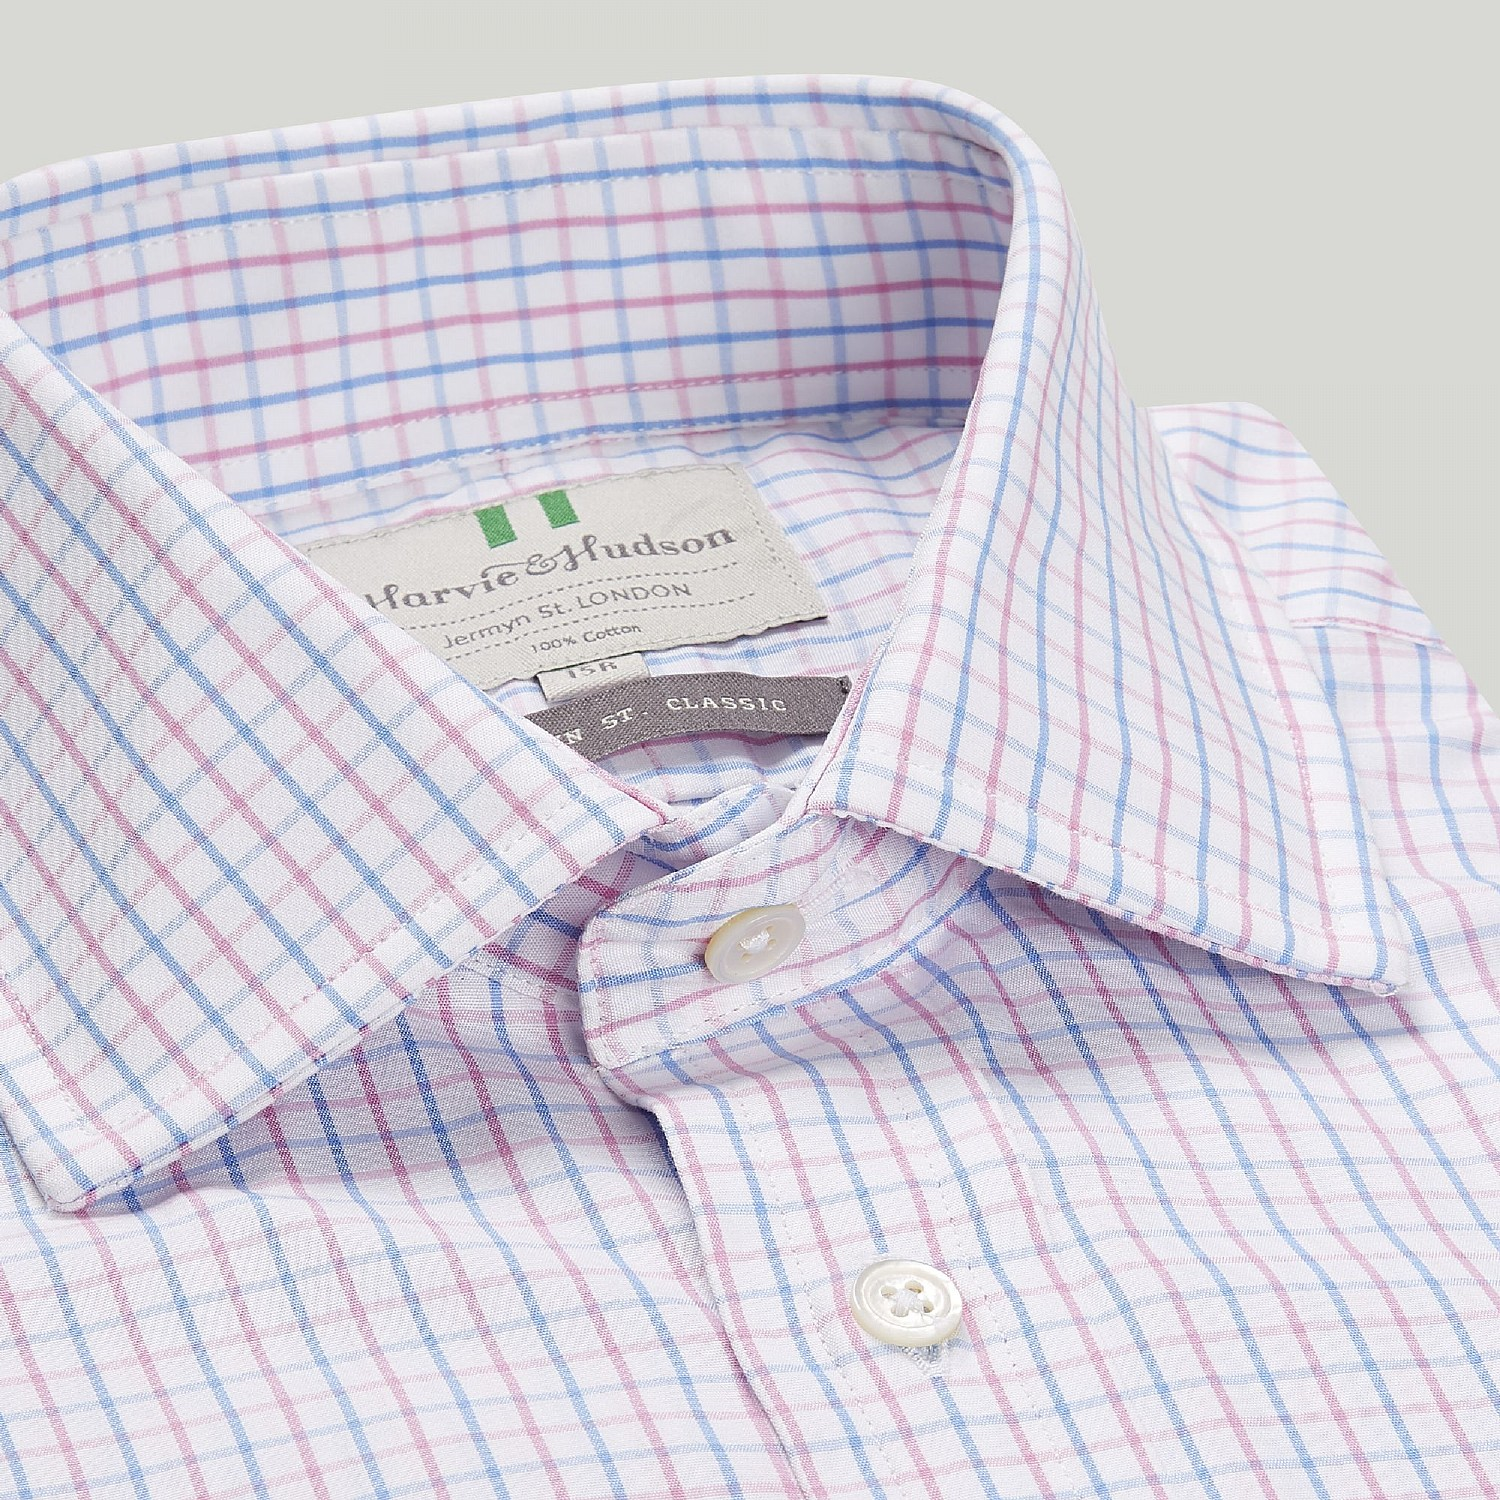 BLUE AND PINK CHECK BUTTON CUFF CLASSIC SHIRT